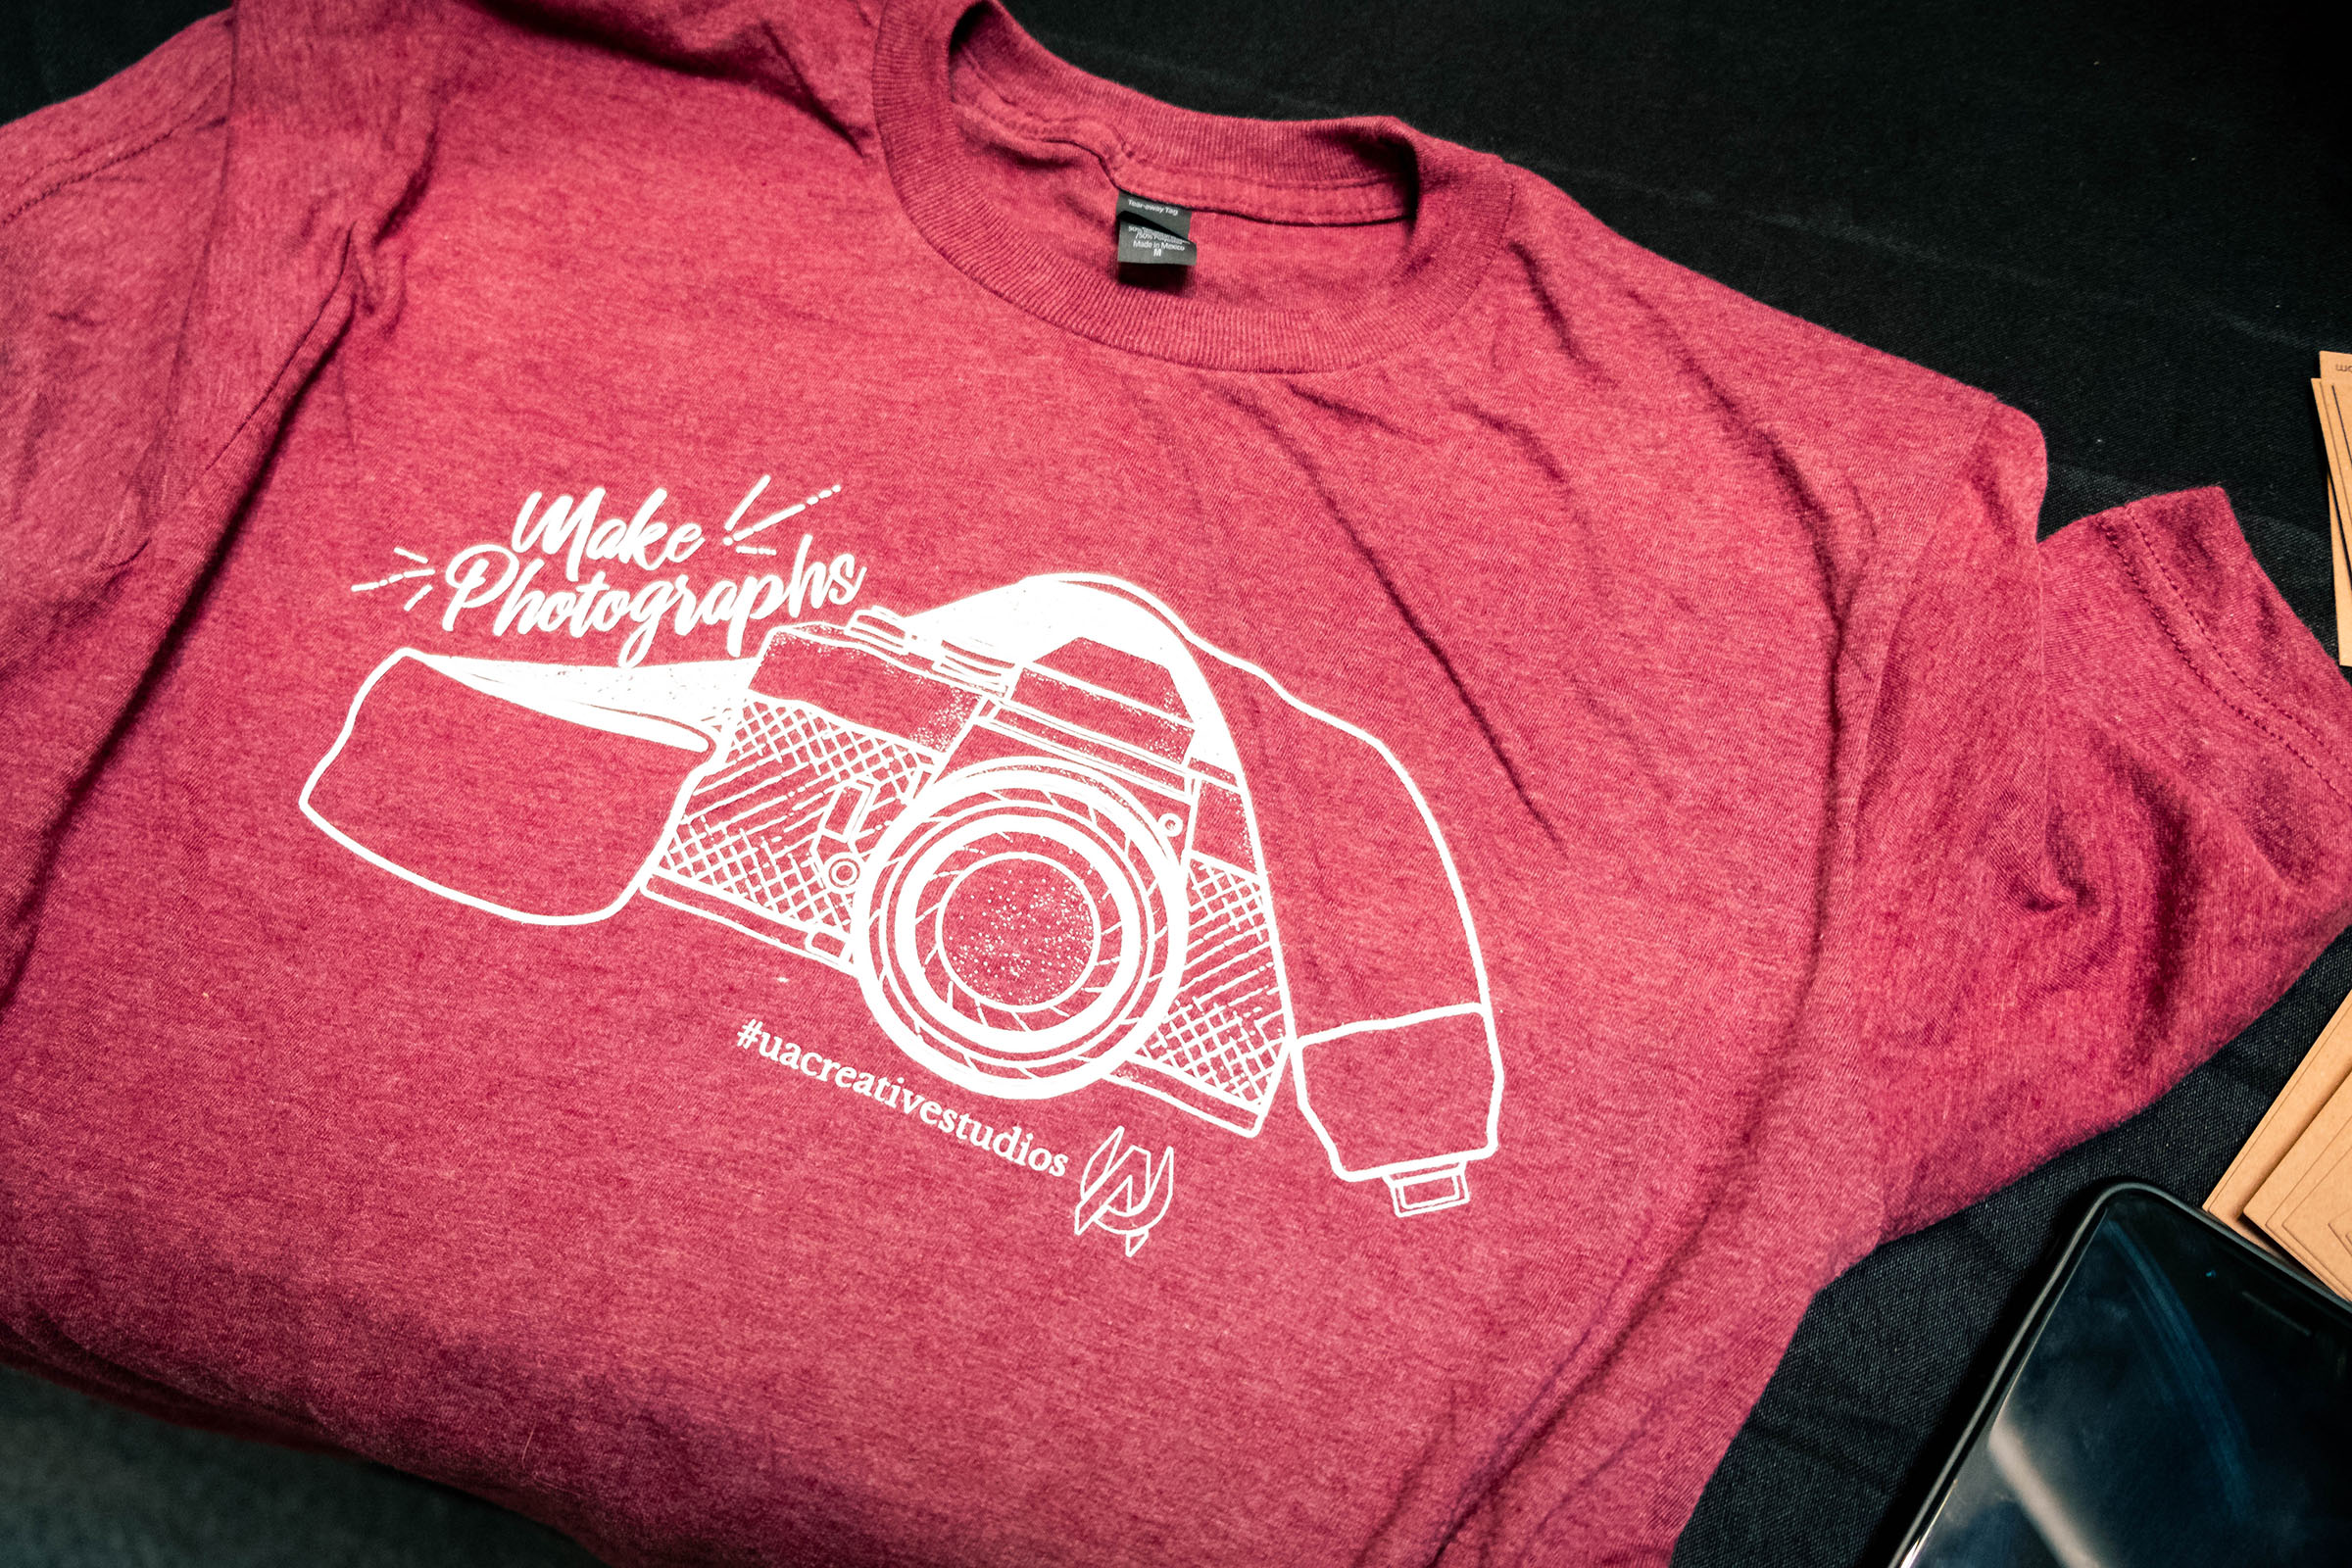 camera recycling event tee shirt